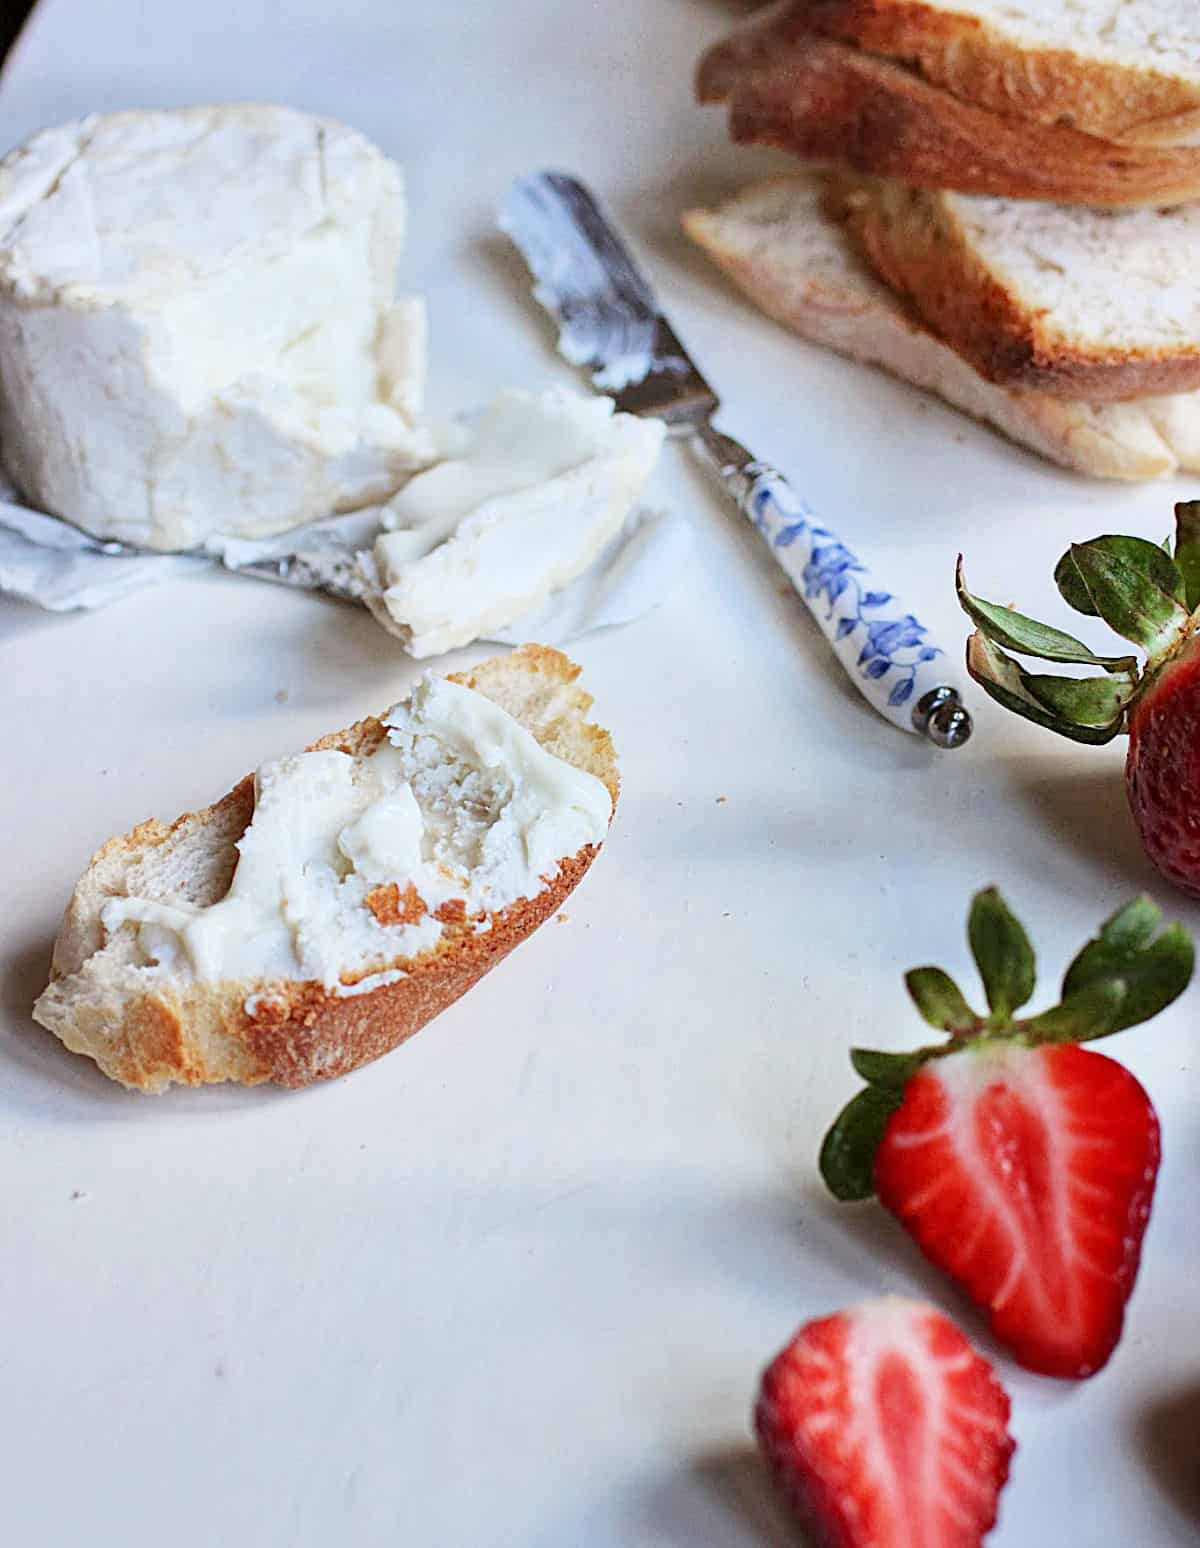 White table with cheese, knife, bread slices, fresh strawberries